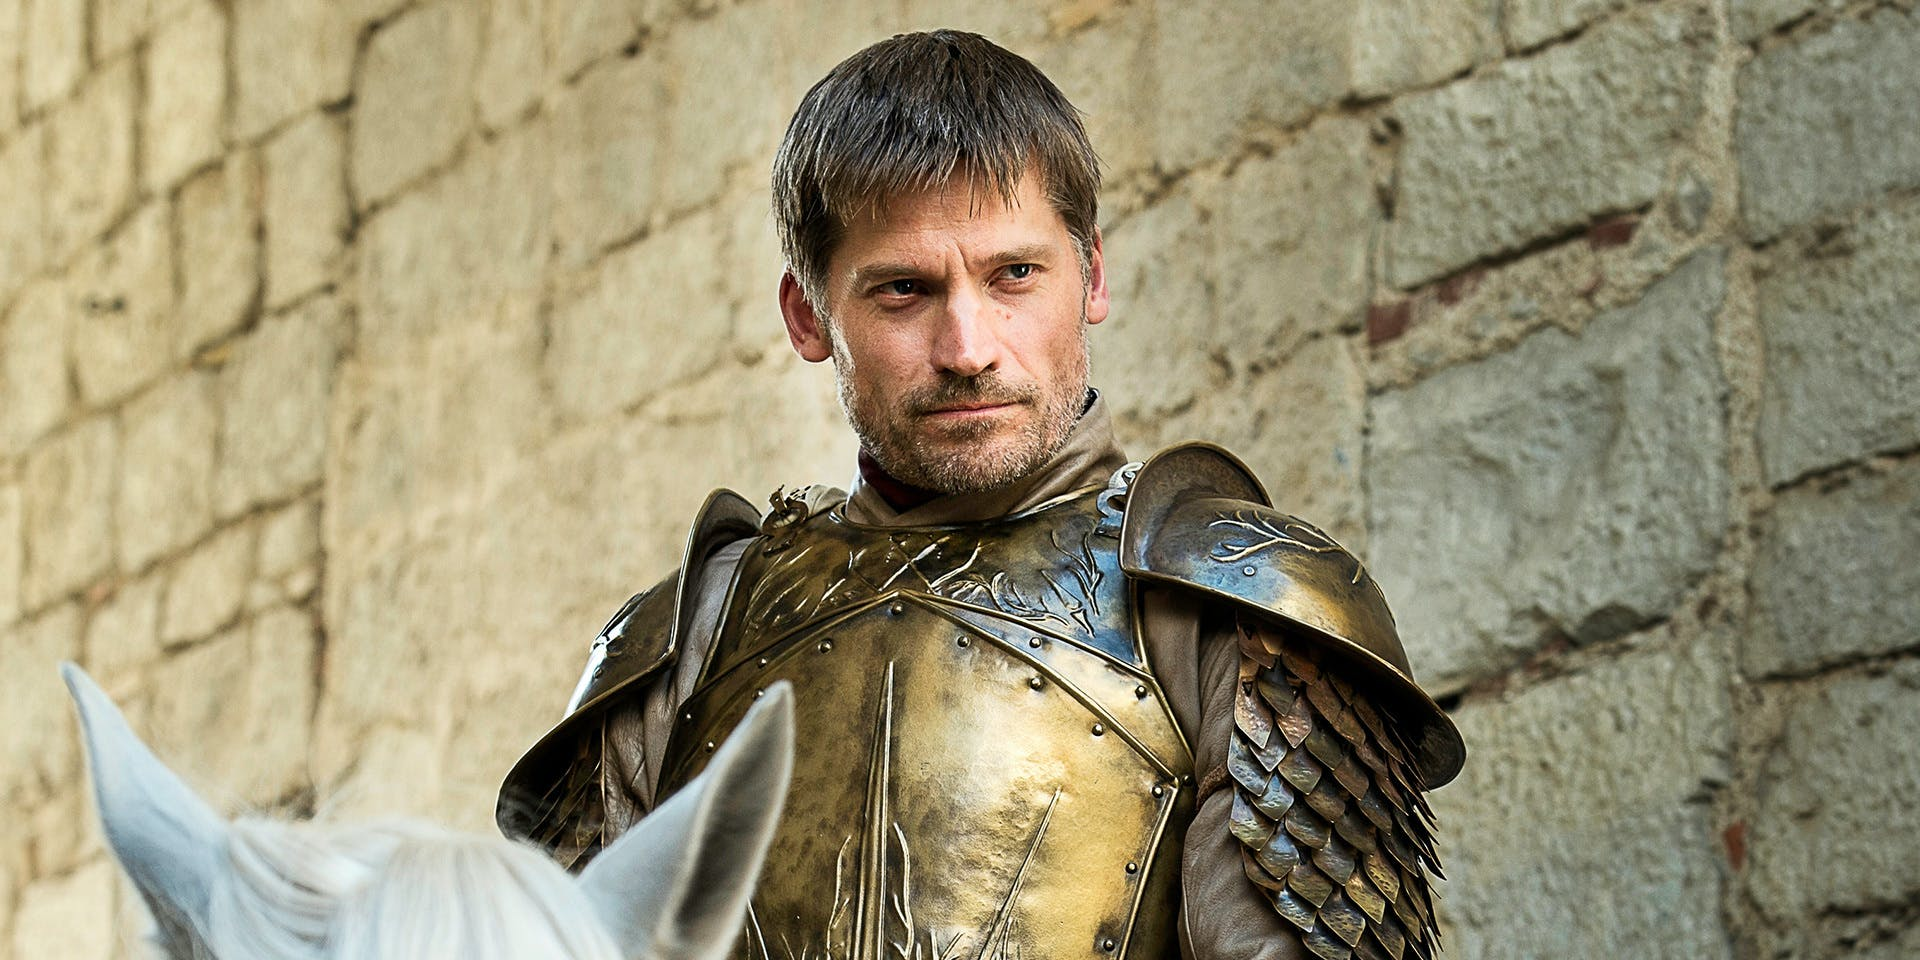 Jaime Lannister mounts up